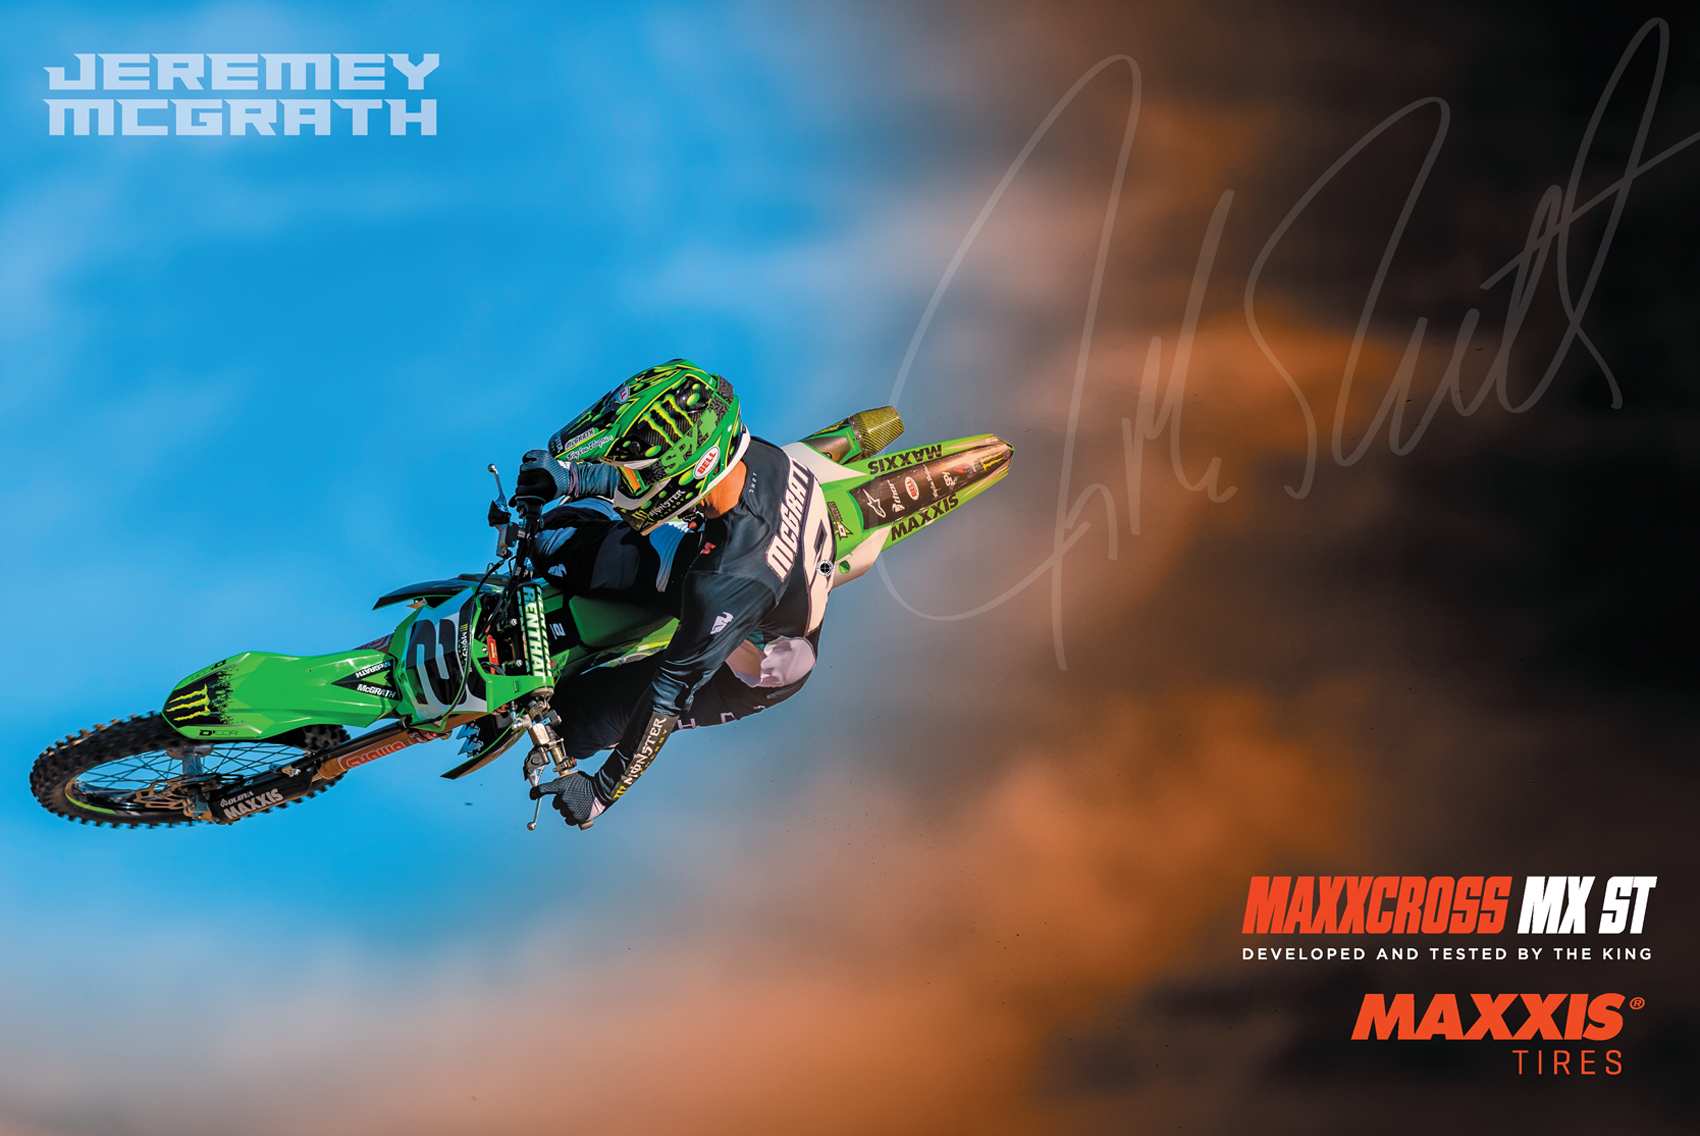 Maxxis Tires Advertisement